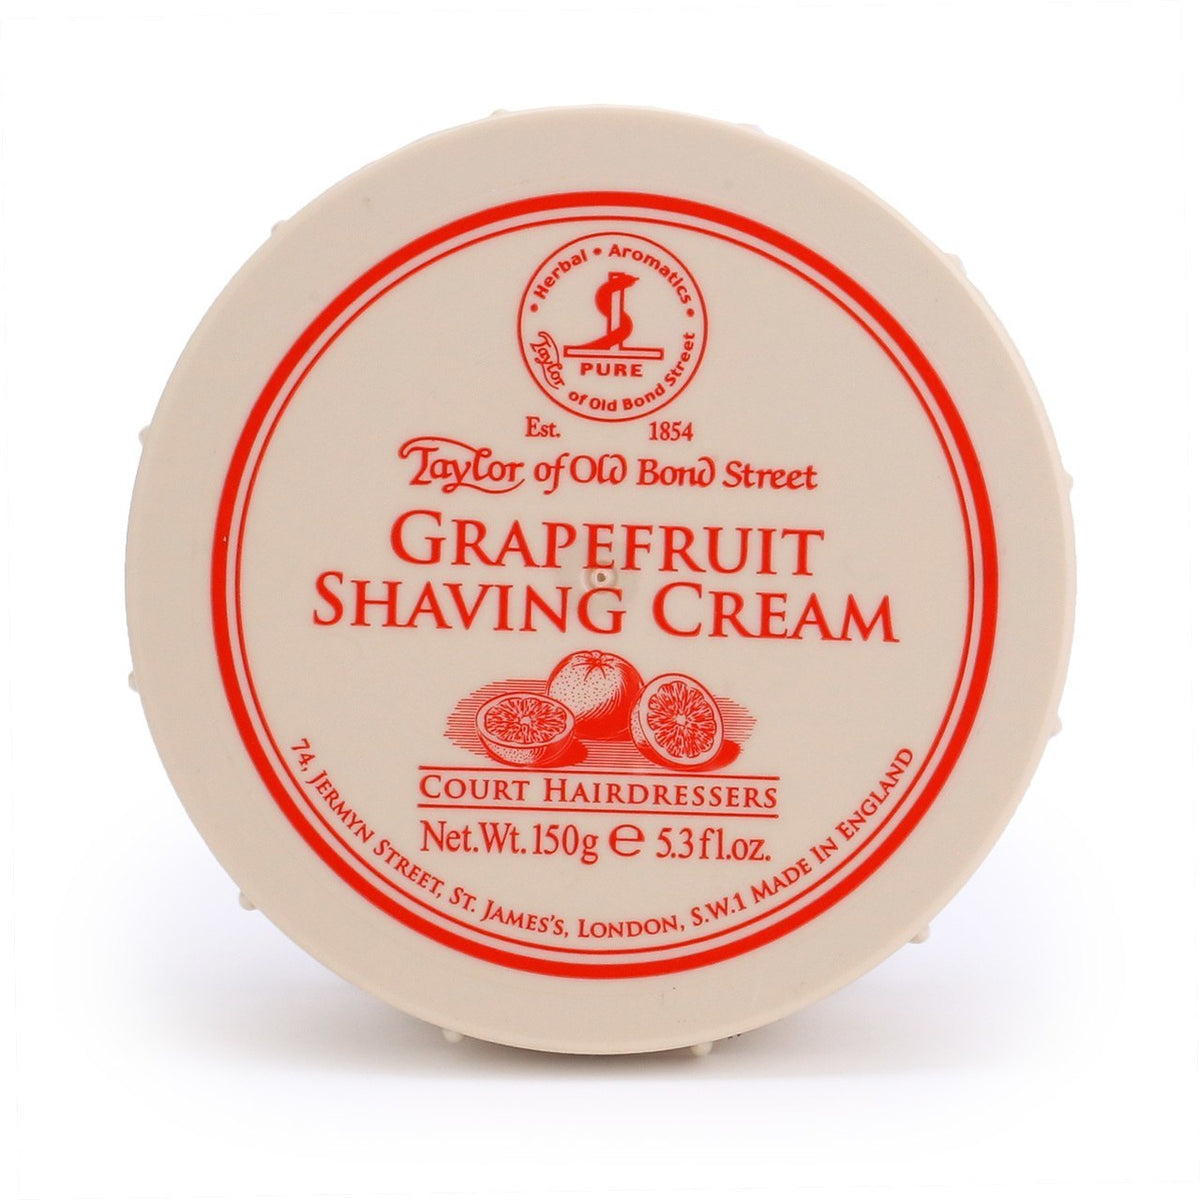 Taylor of Old Bond Street Grapefruit Shaving Cream Bowl 150g - Grapefruit